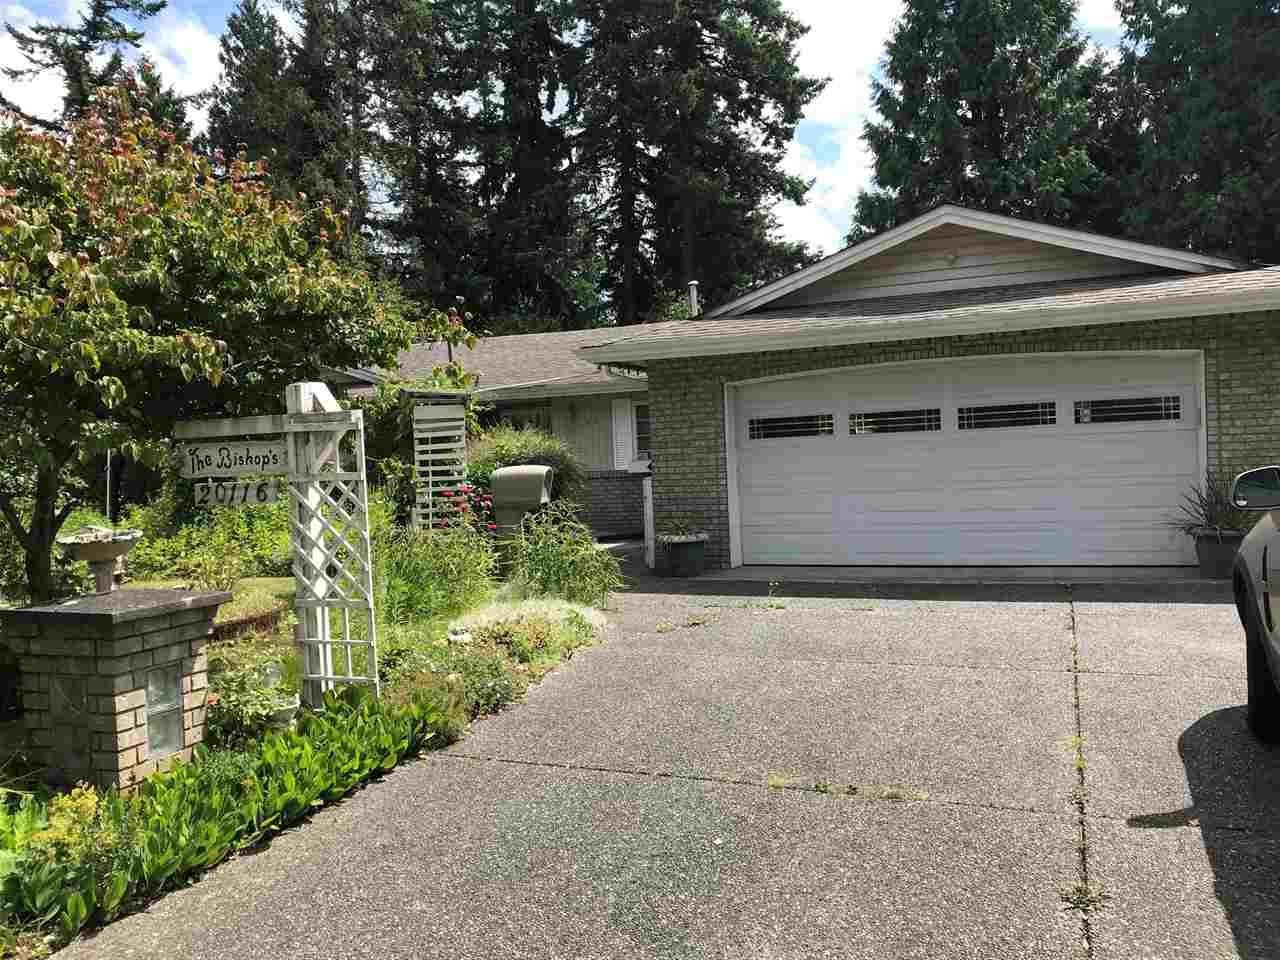 Main Photo: 20116 43 Avenue in Langley: Brookswood Langley House for sale : MLS®# R2475335